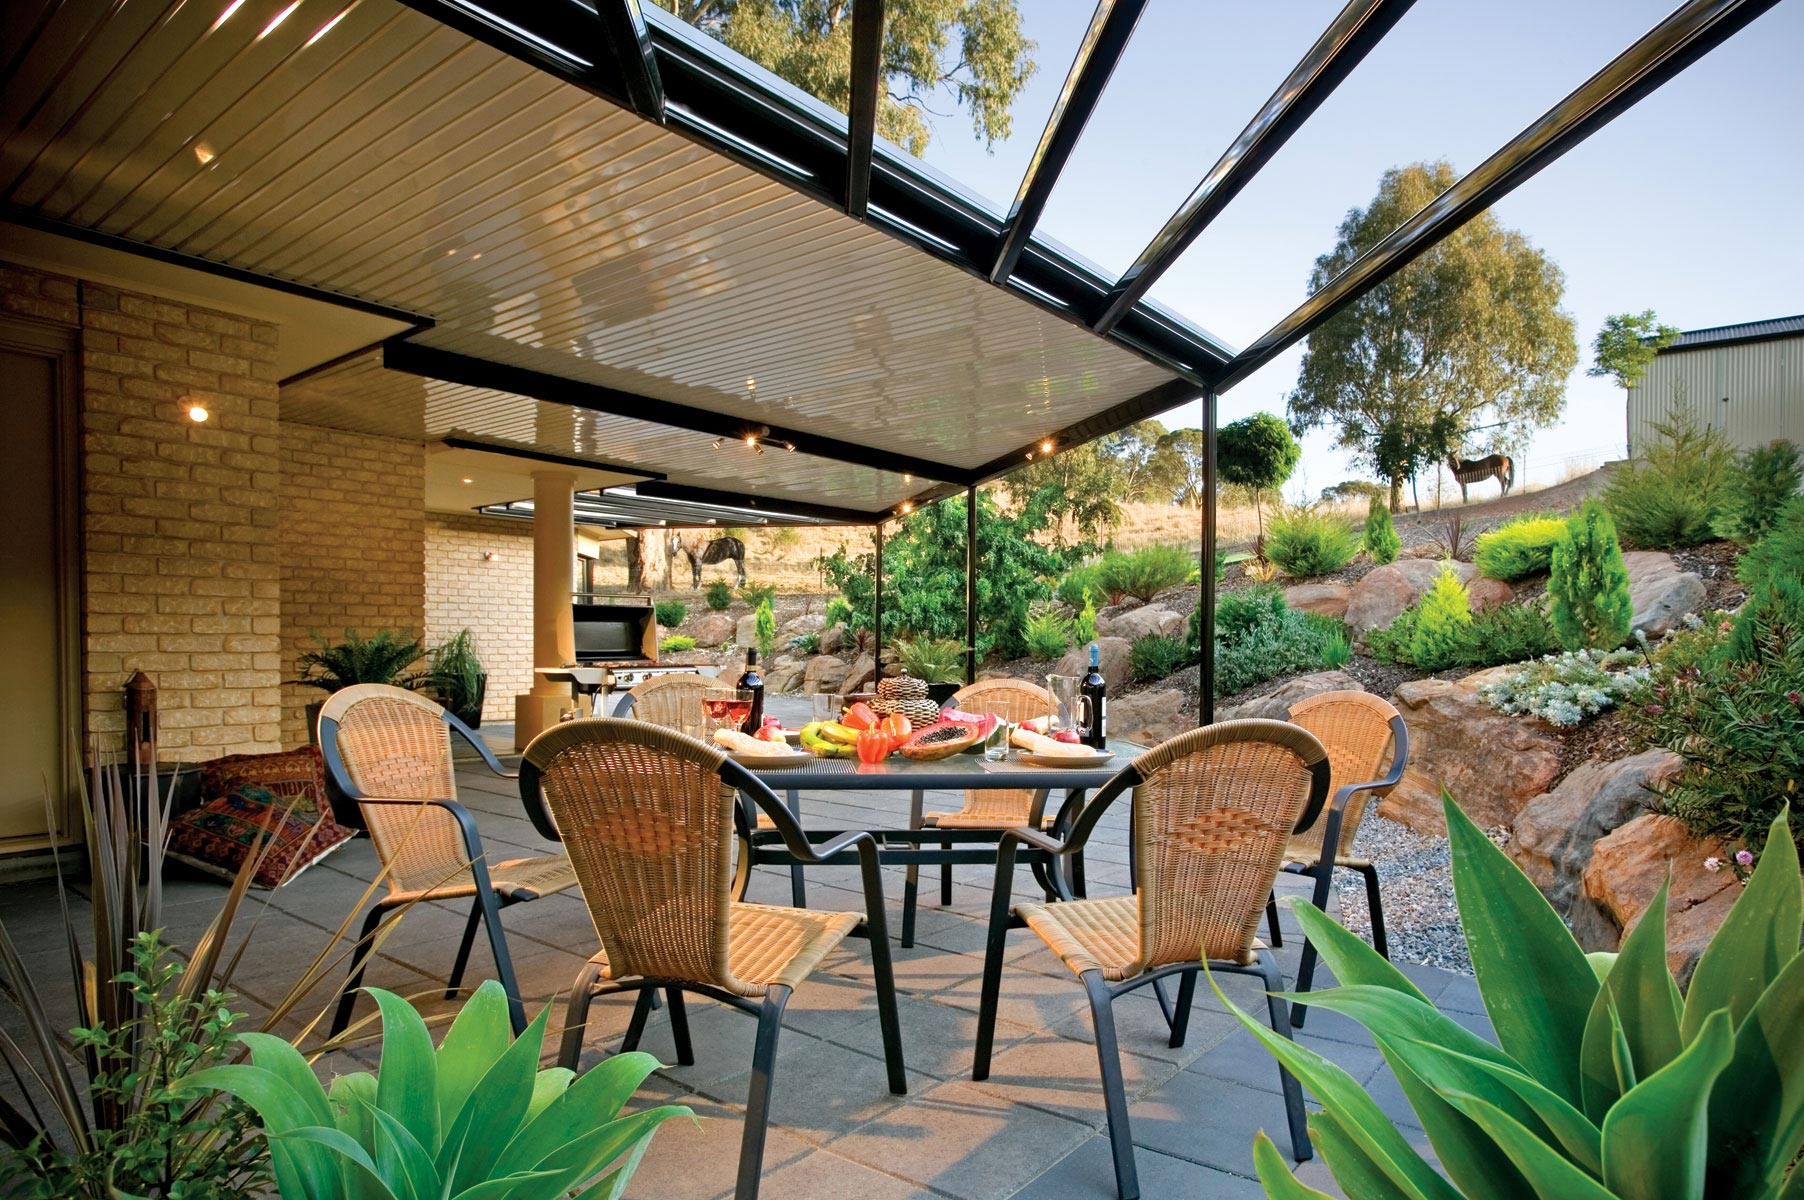 Opening Sunroofs in the beautiful garden by the best Patio Builders in Kingscliff